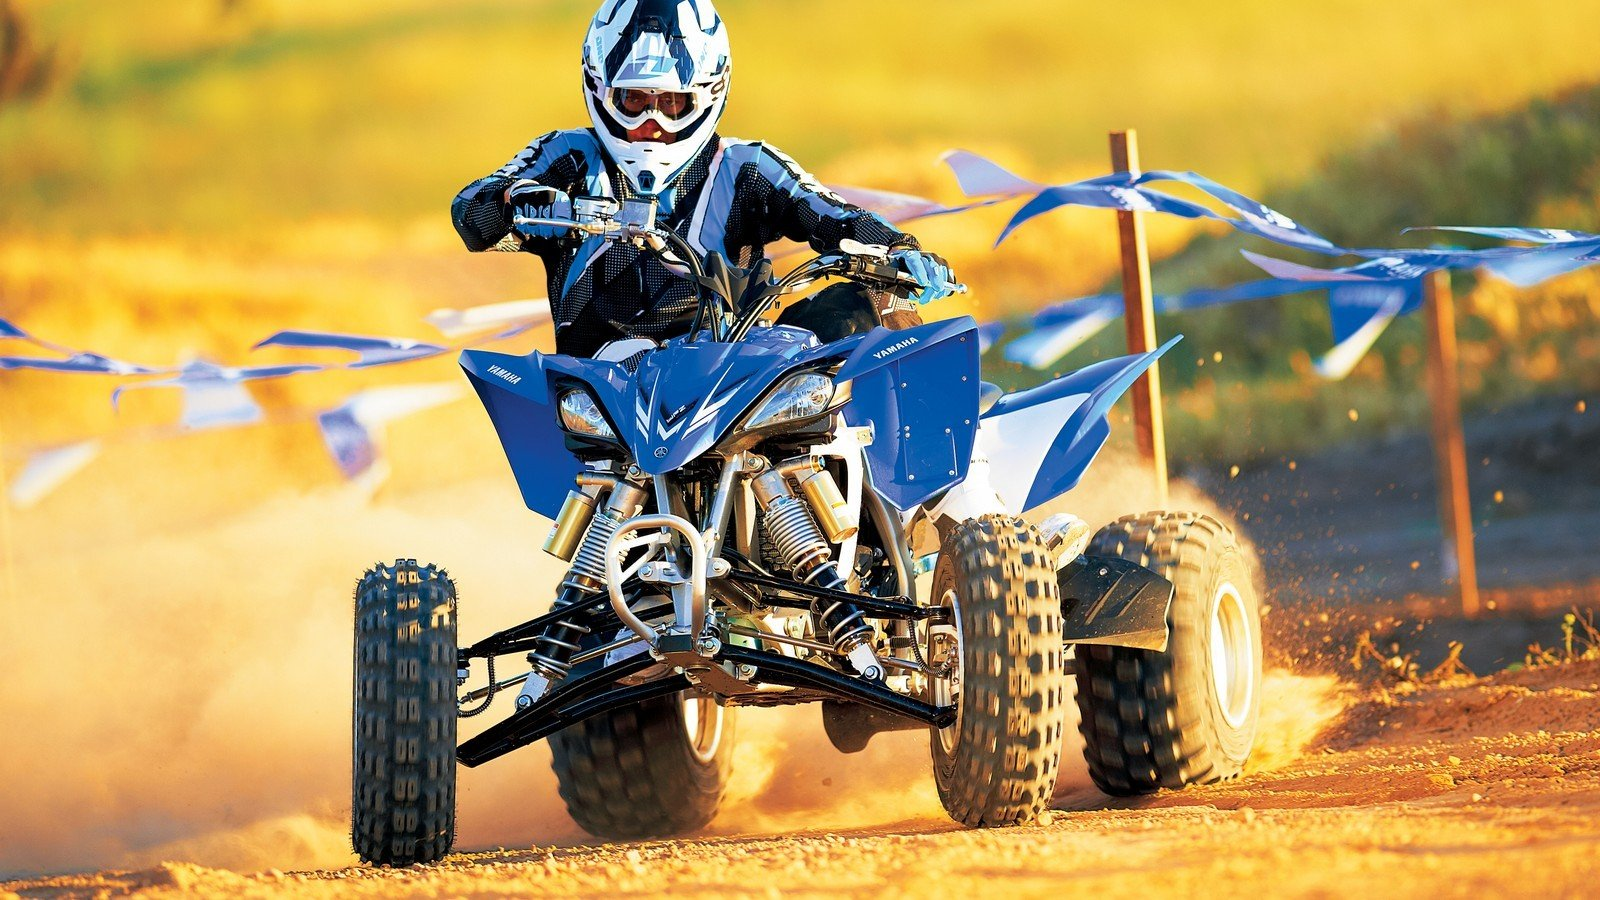 2013 yamaha yfz450r picture 465127 motorcycle review for 2013 yamaha yfz 450